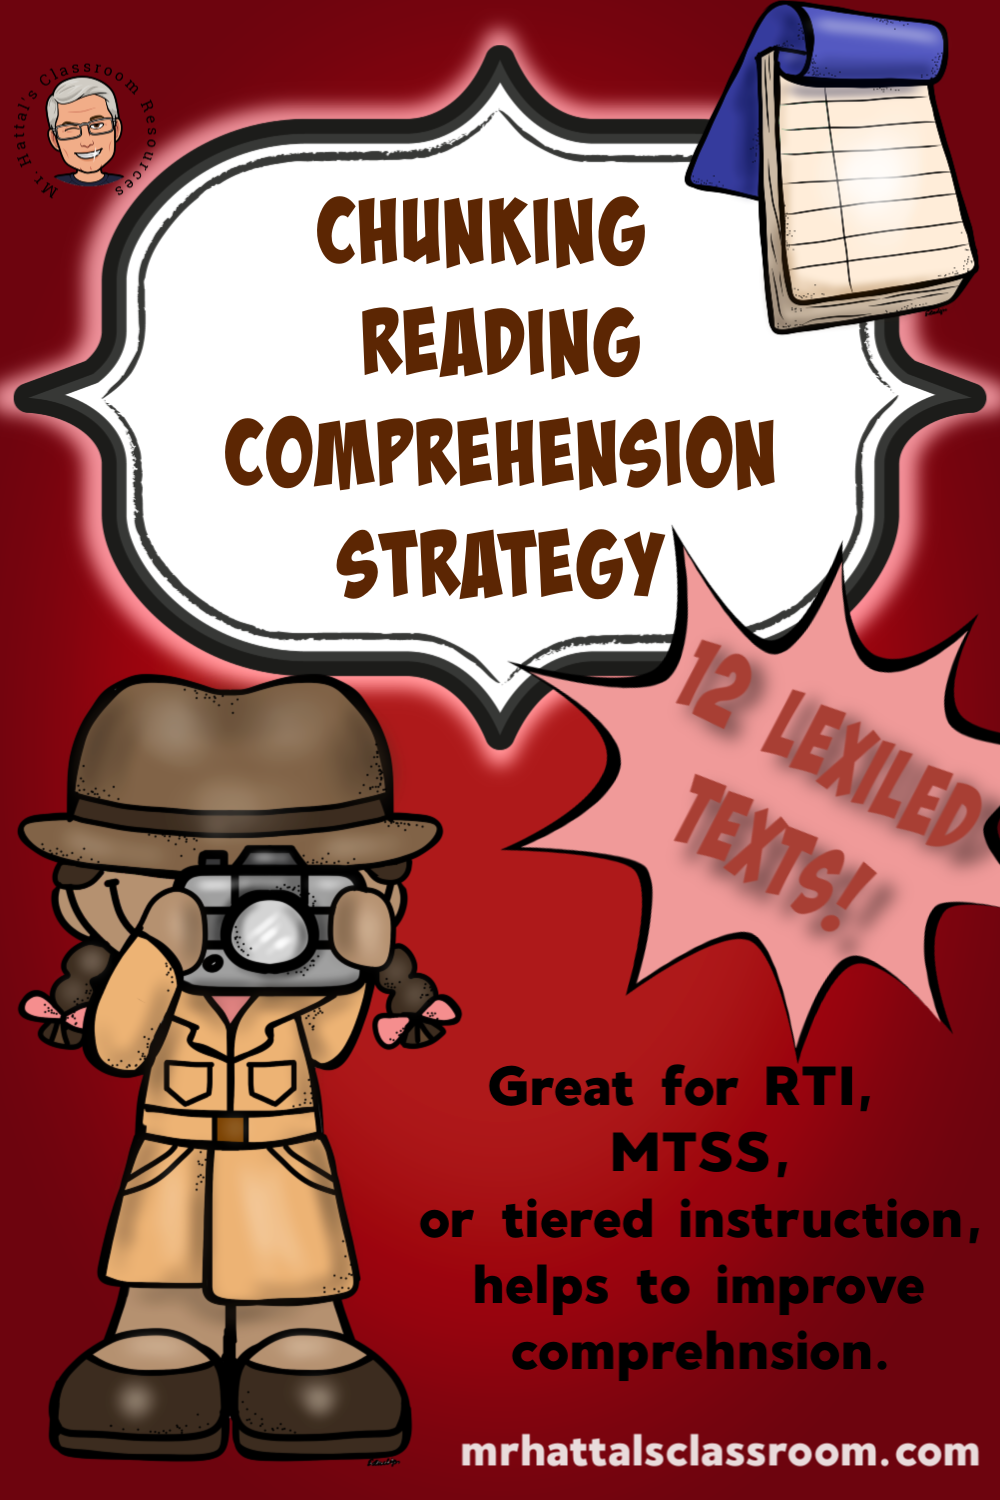 Chunking/Parsing the Text Lexiled Text for RTI/MTSS Reading